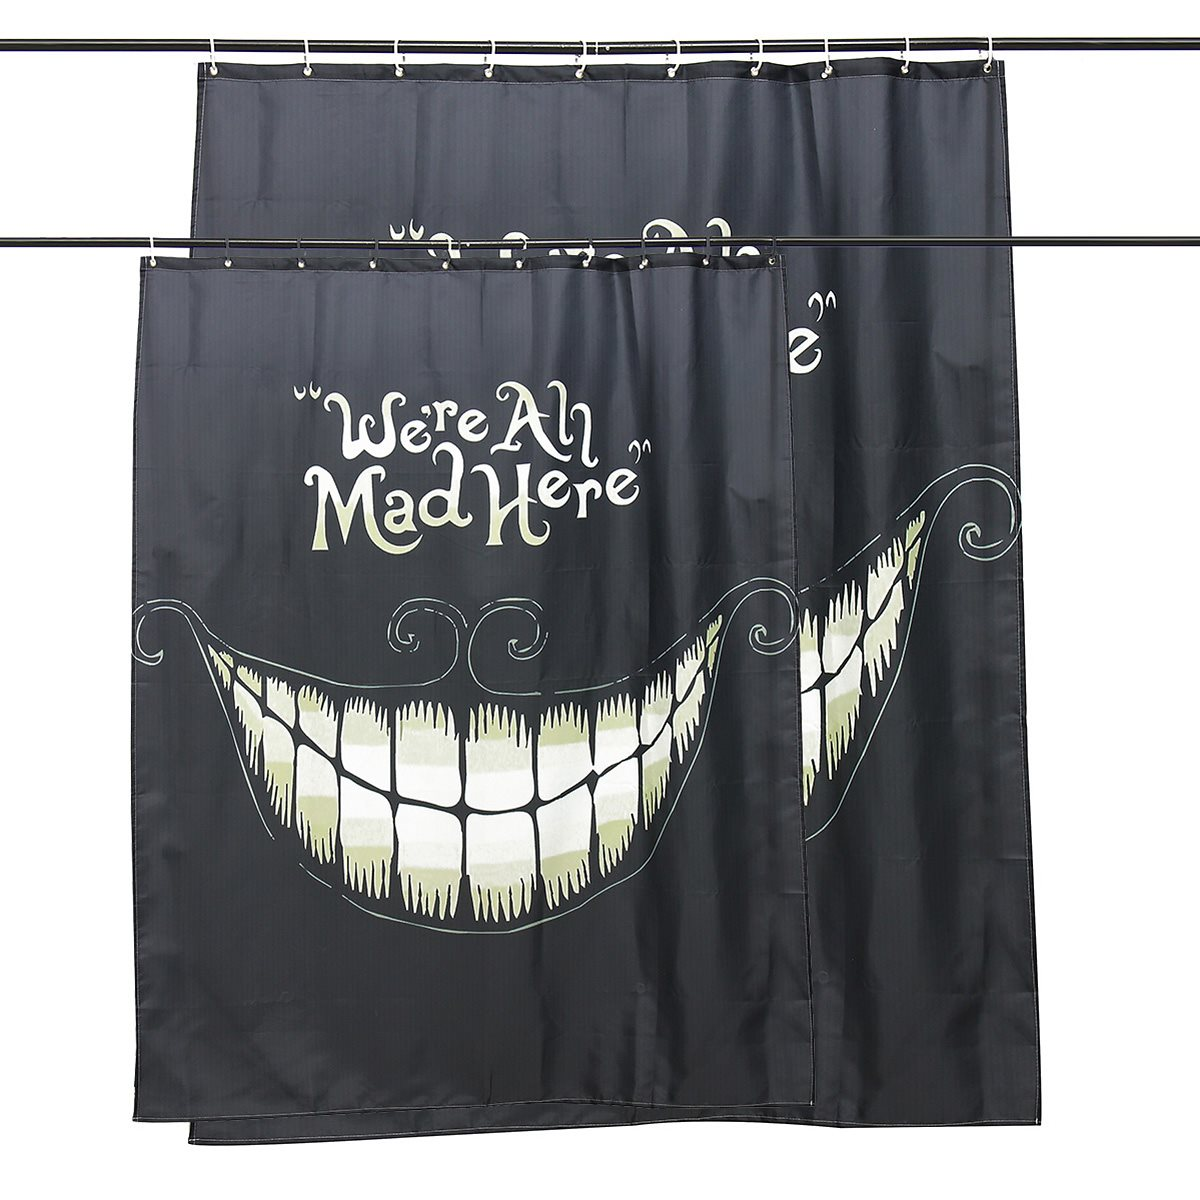 Halloween shower curtain hooks - Waterproof Halloween Party Shower Curtain We Re All Mad Here Printed Bathroom Curtain 12